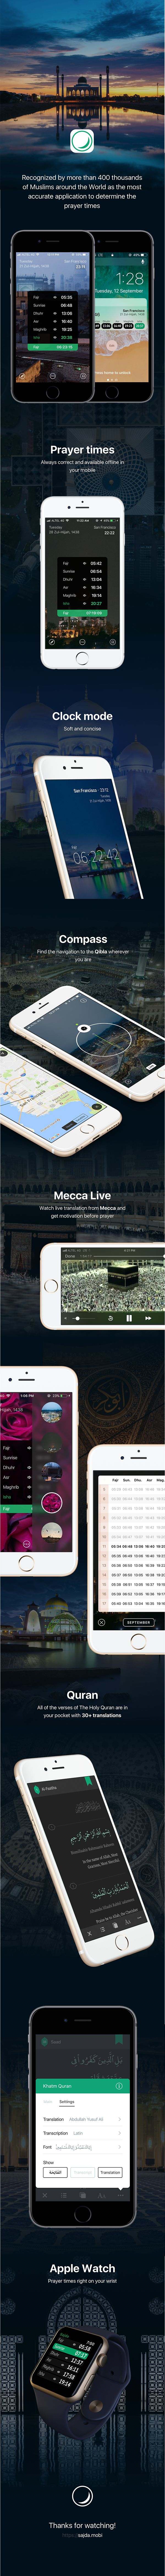 Muslim app, Sajda - Prayer times, Quran, Azan & Qibla - recognized by more than 400 thousands of Muslims of Central Asia as the most accurate application to determine the prayer times, including Azan, the direction of Qibla, Islamic Hijri calendar, beautiful Quran reading and so on.  Features: Islamic app Quran app Salat times app Qibla direction Compass Mecca live